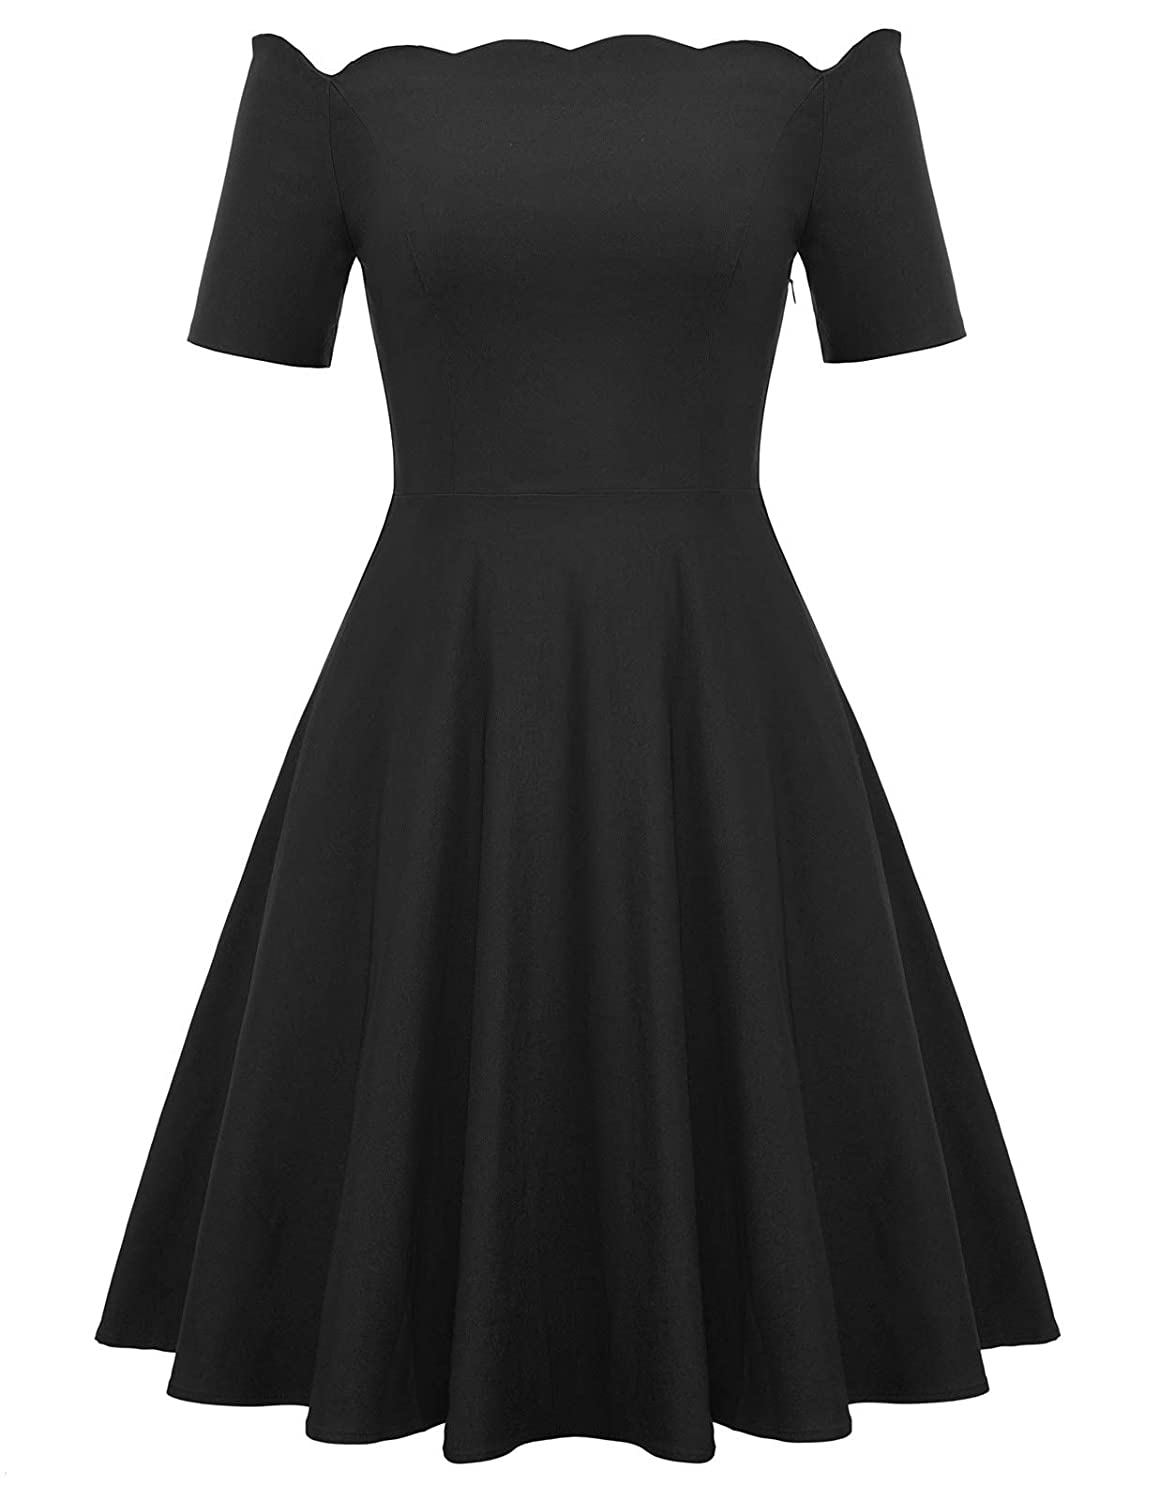 1950s Plus Size Dresses, Swing Dresses Hanna Nikole Womens Plus Size Off Shoulder Short Sleeve A Line Swing Party Dress $35.99 AT vintagedancer.com